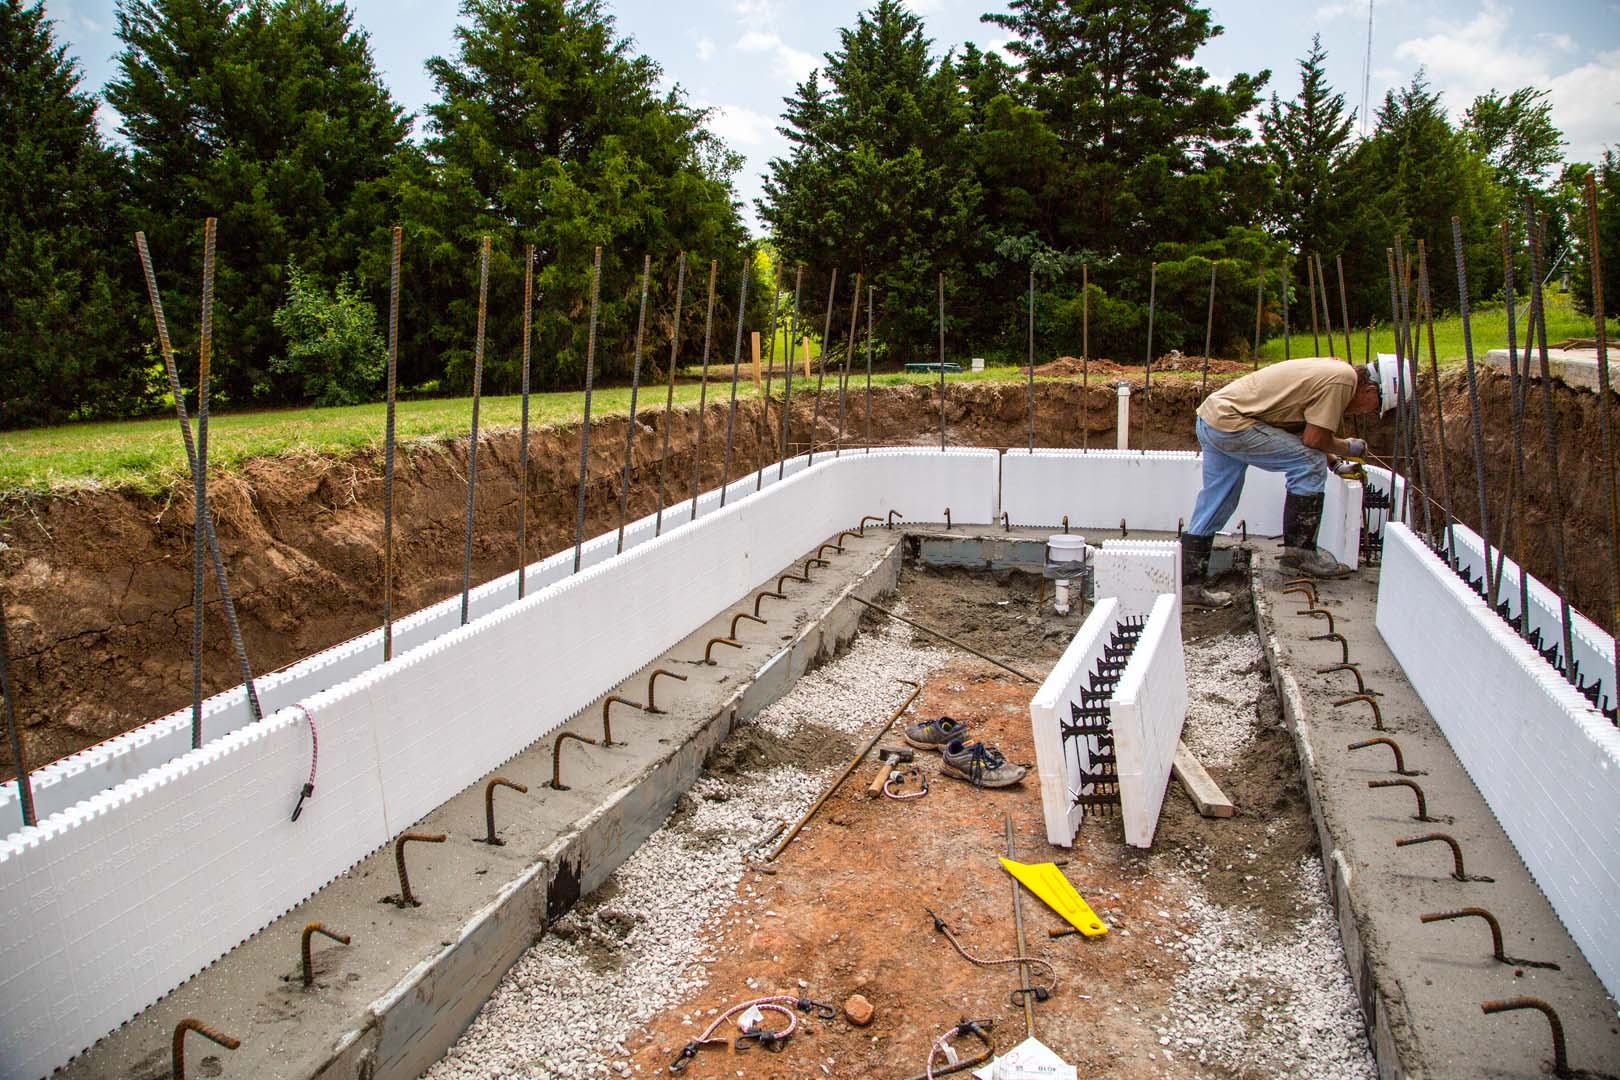 Icf swimming pools buildblock insulating concrete forms for Icf houses for sale